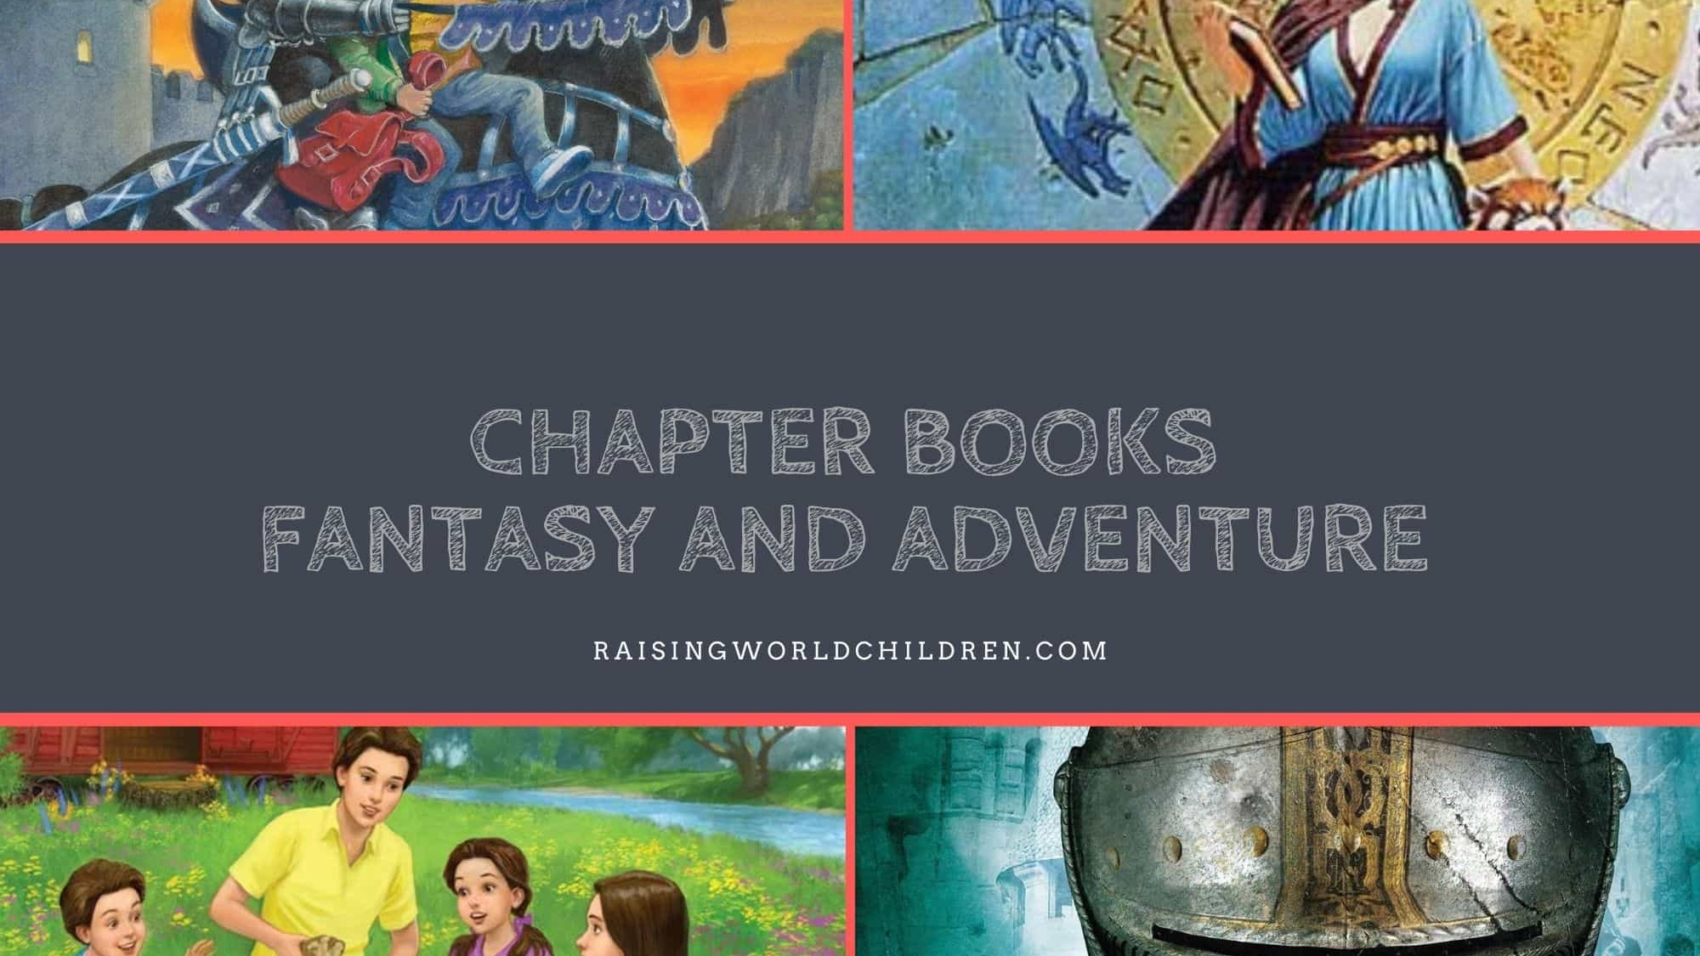 Chapterbooks for kids